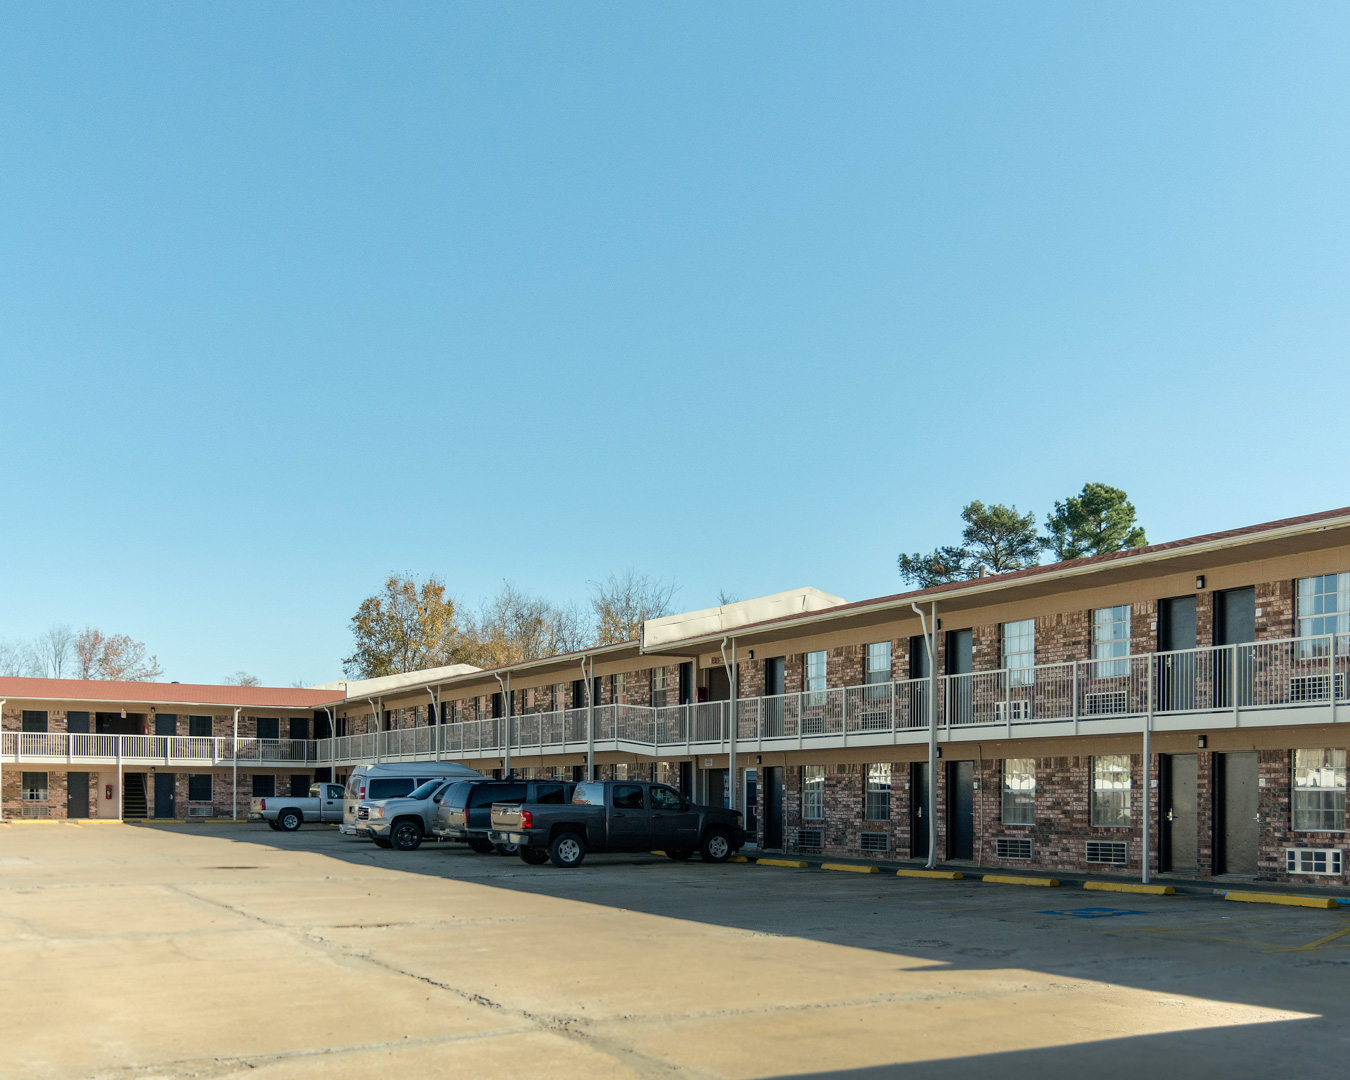 Econo Lodge, Russellville AR